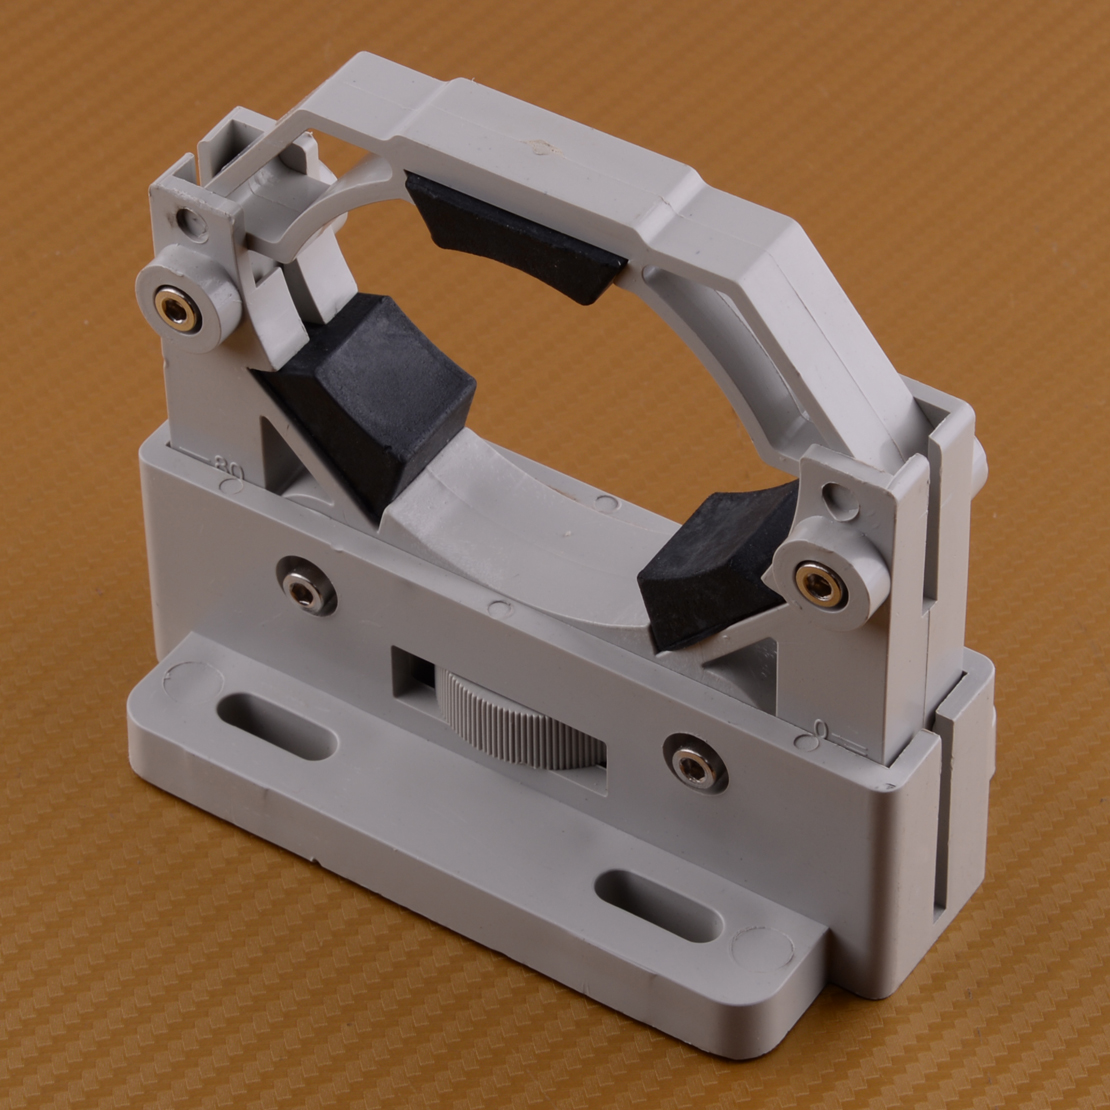 LETAOSK New Adjustable Holder Support Mount Fit For 50-80mm CO2 Laser Tube Engraving Machine